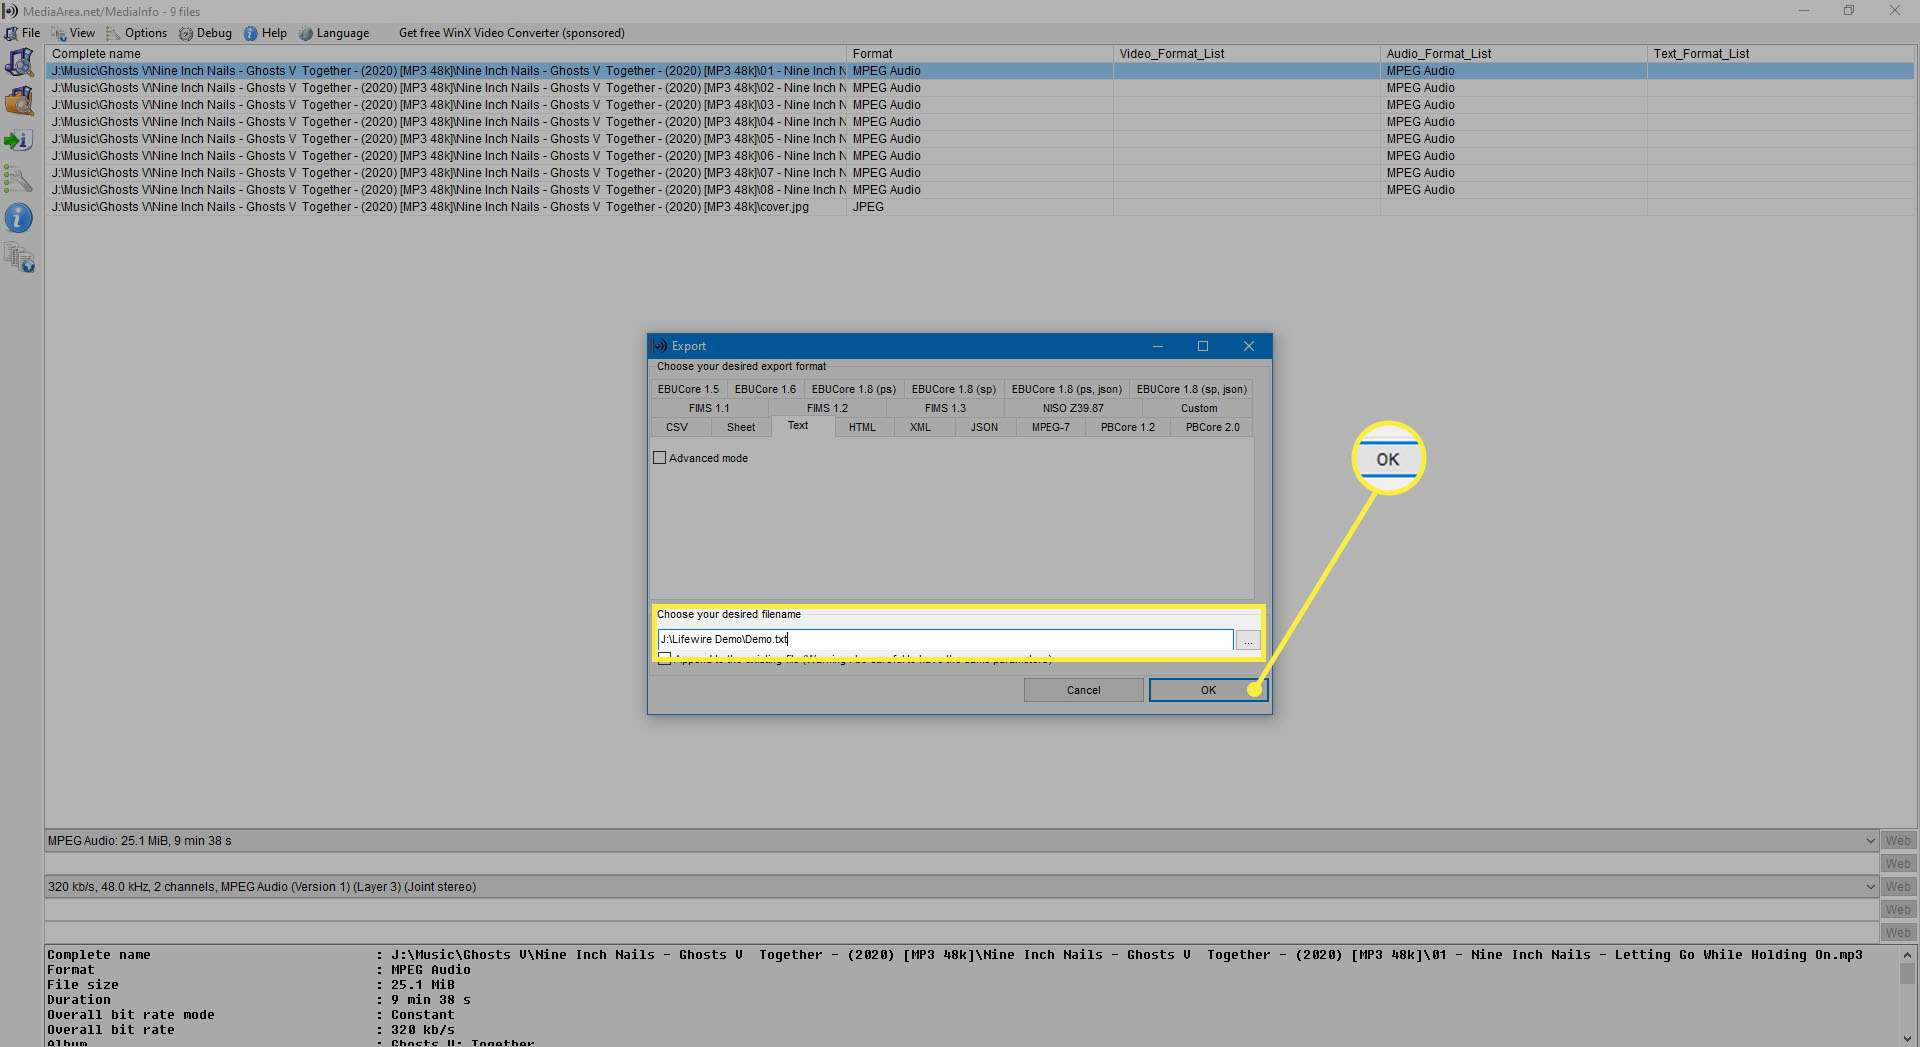 Selecting a path to save file and filename.